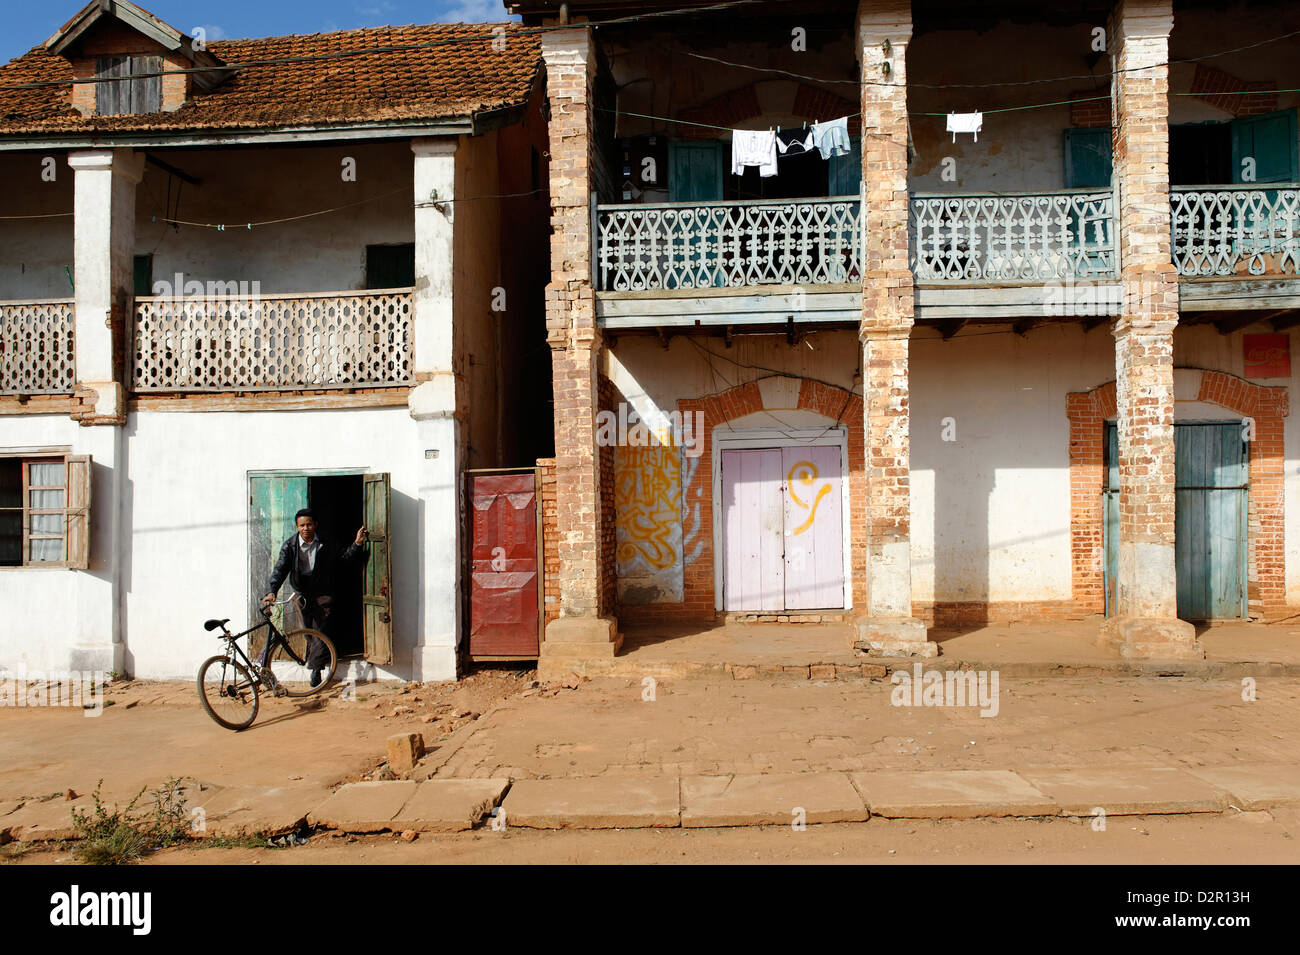 The main street, Ambalavao, southern part of the Central Highlands, Madagascar, Africa - Stock Image